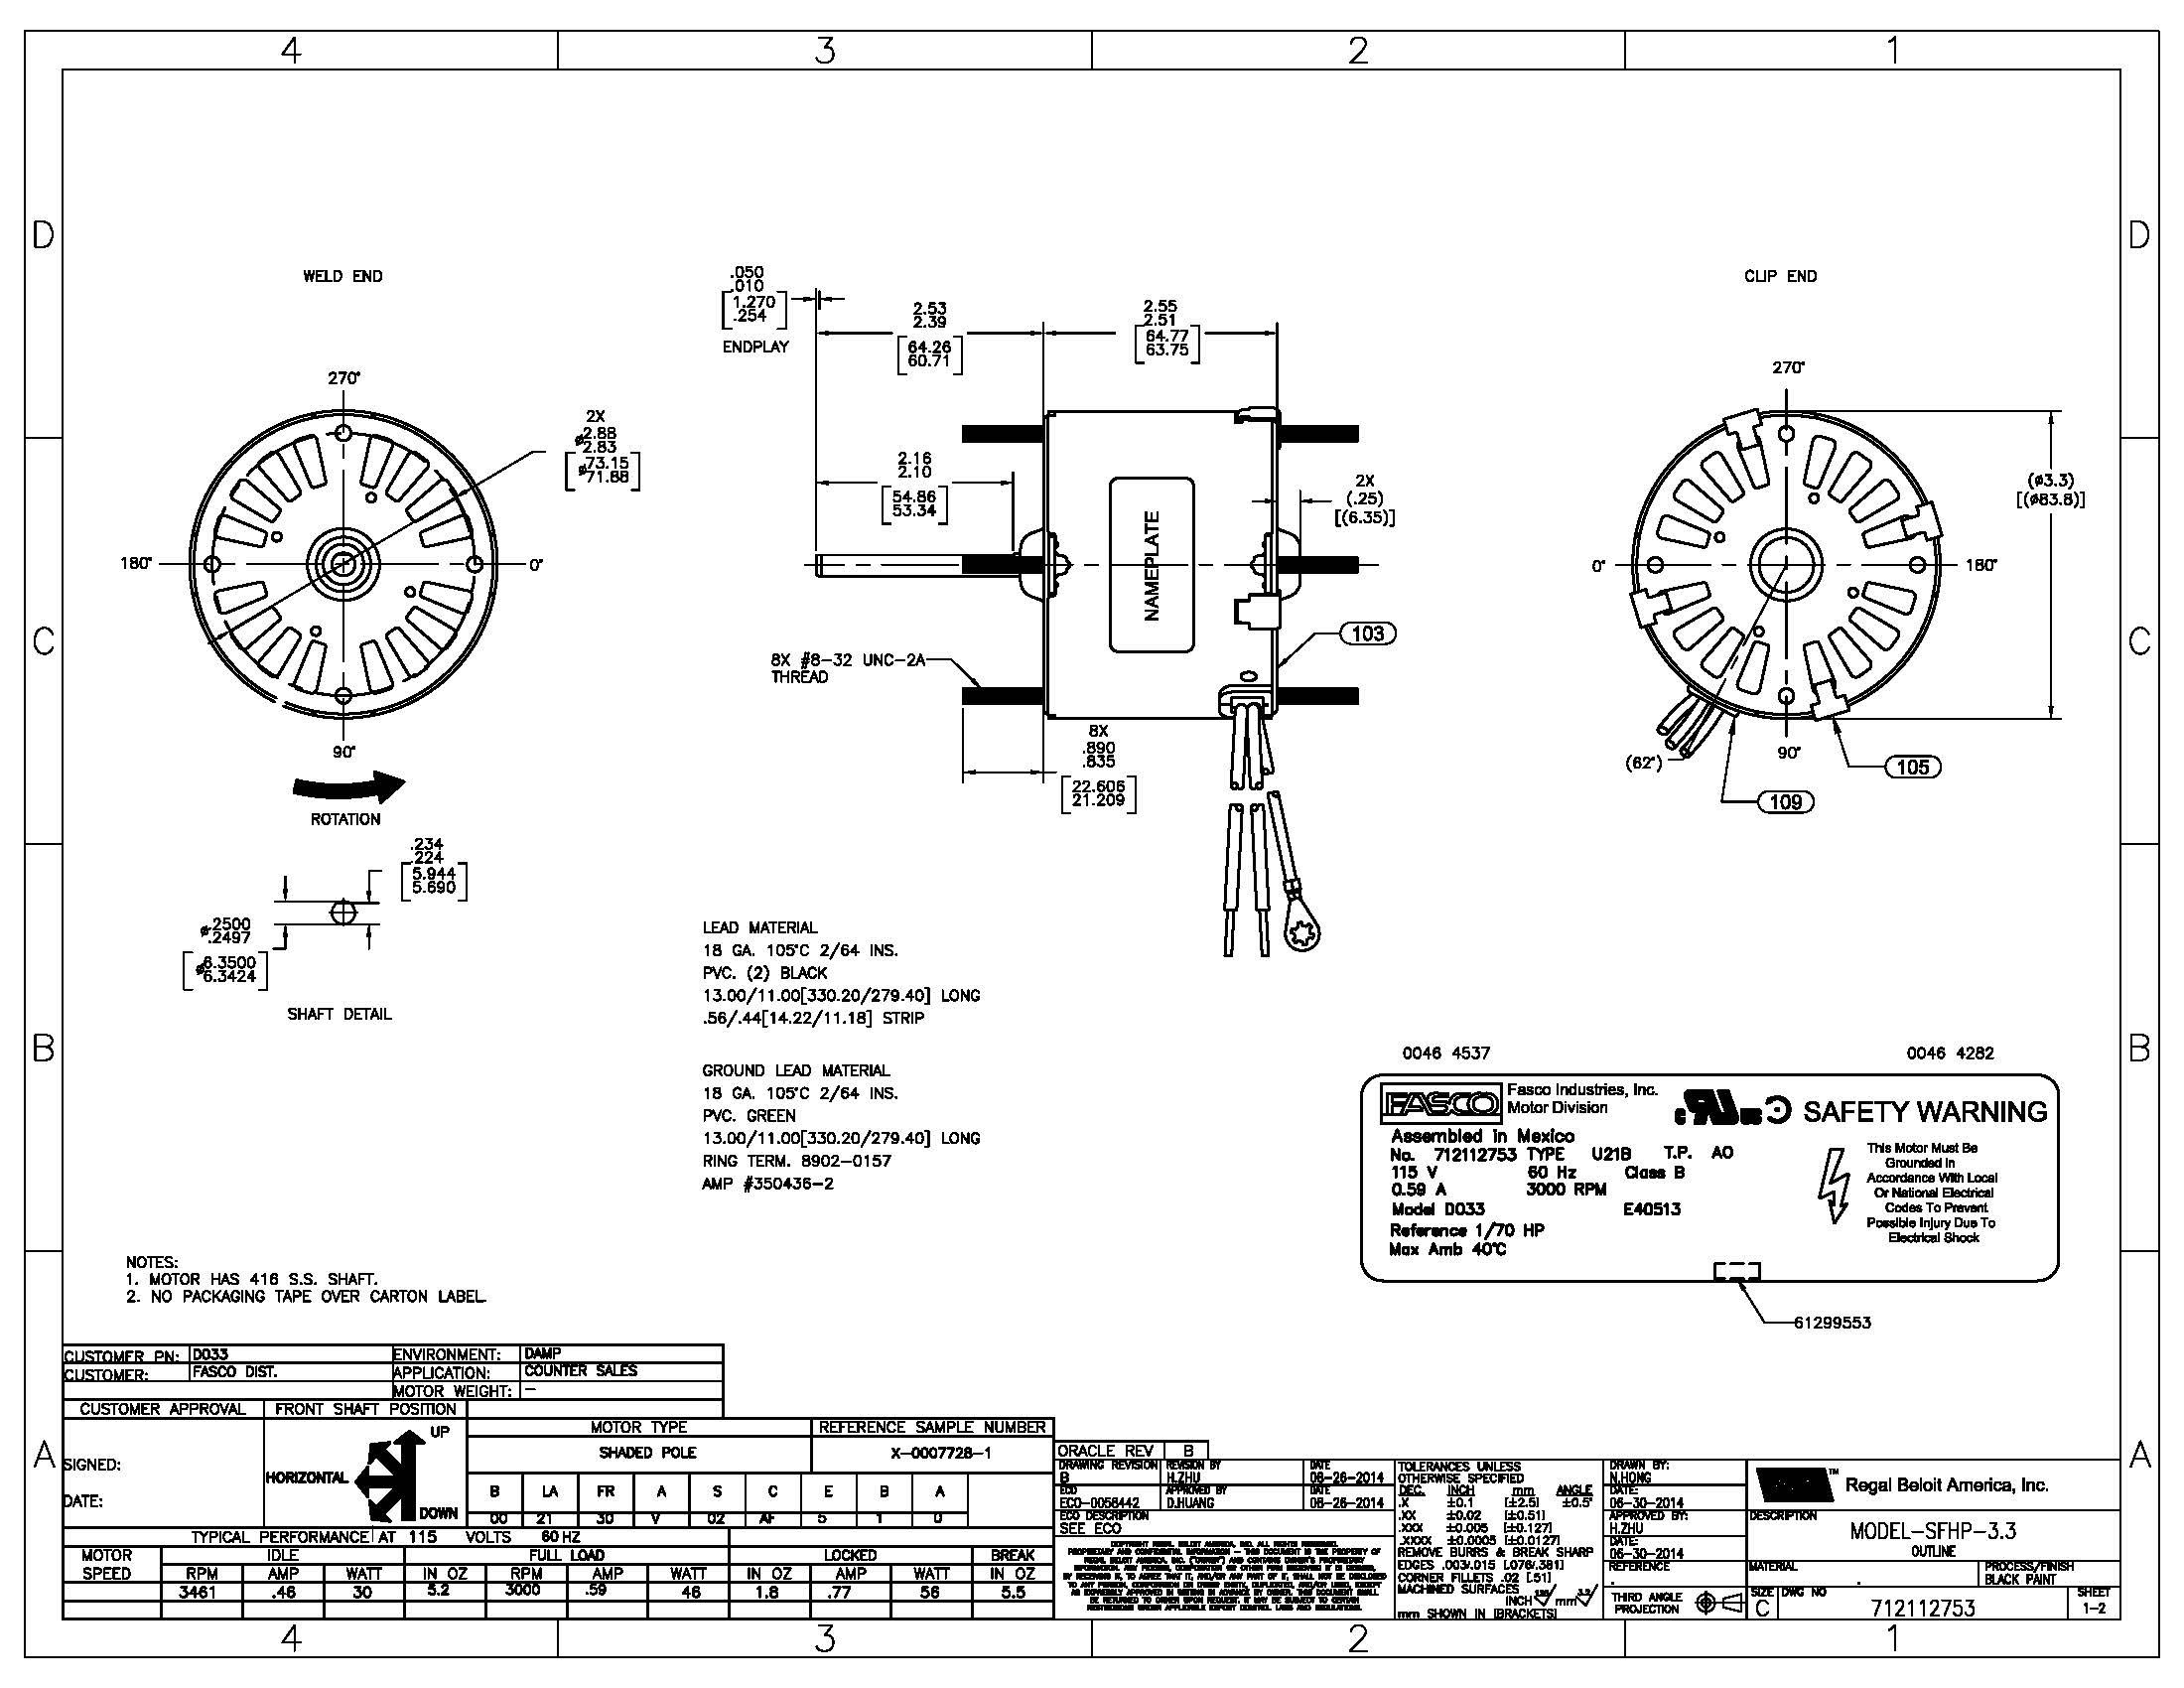 Fasco D701 Wiring Diagram | Wiring Diagram on